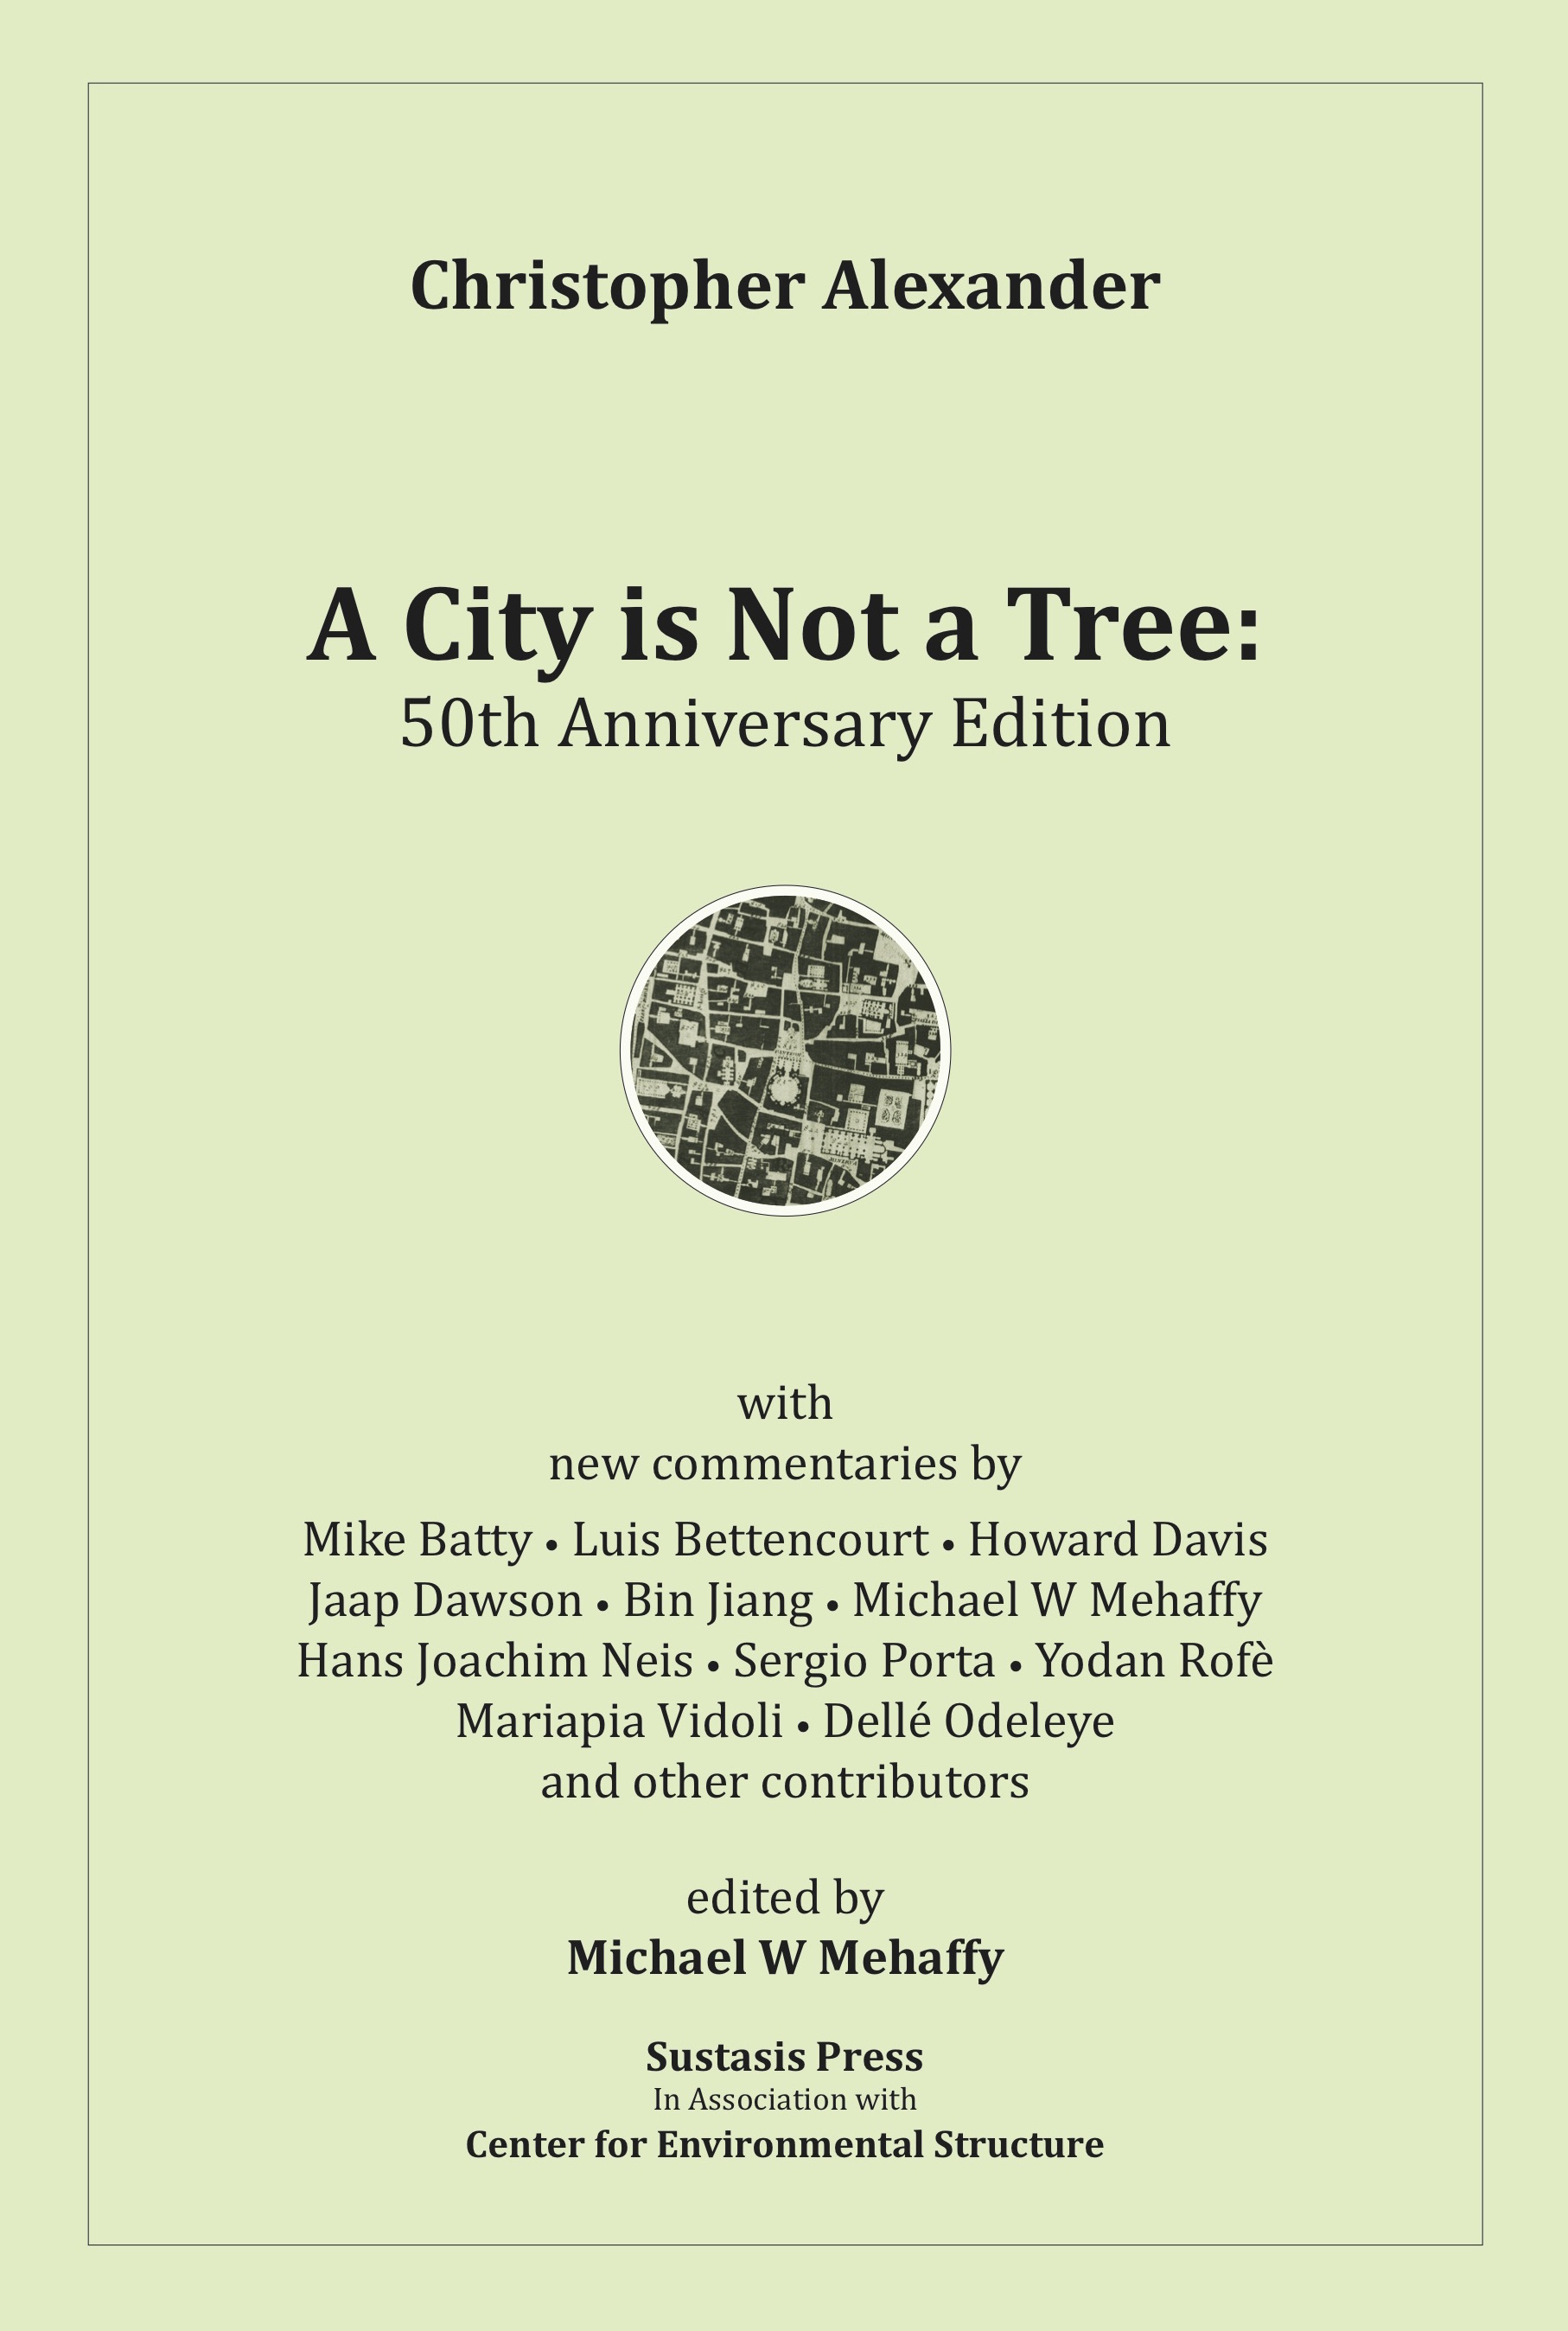 A City is Not a Tree - 50th Anniversary Edition